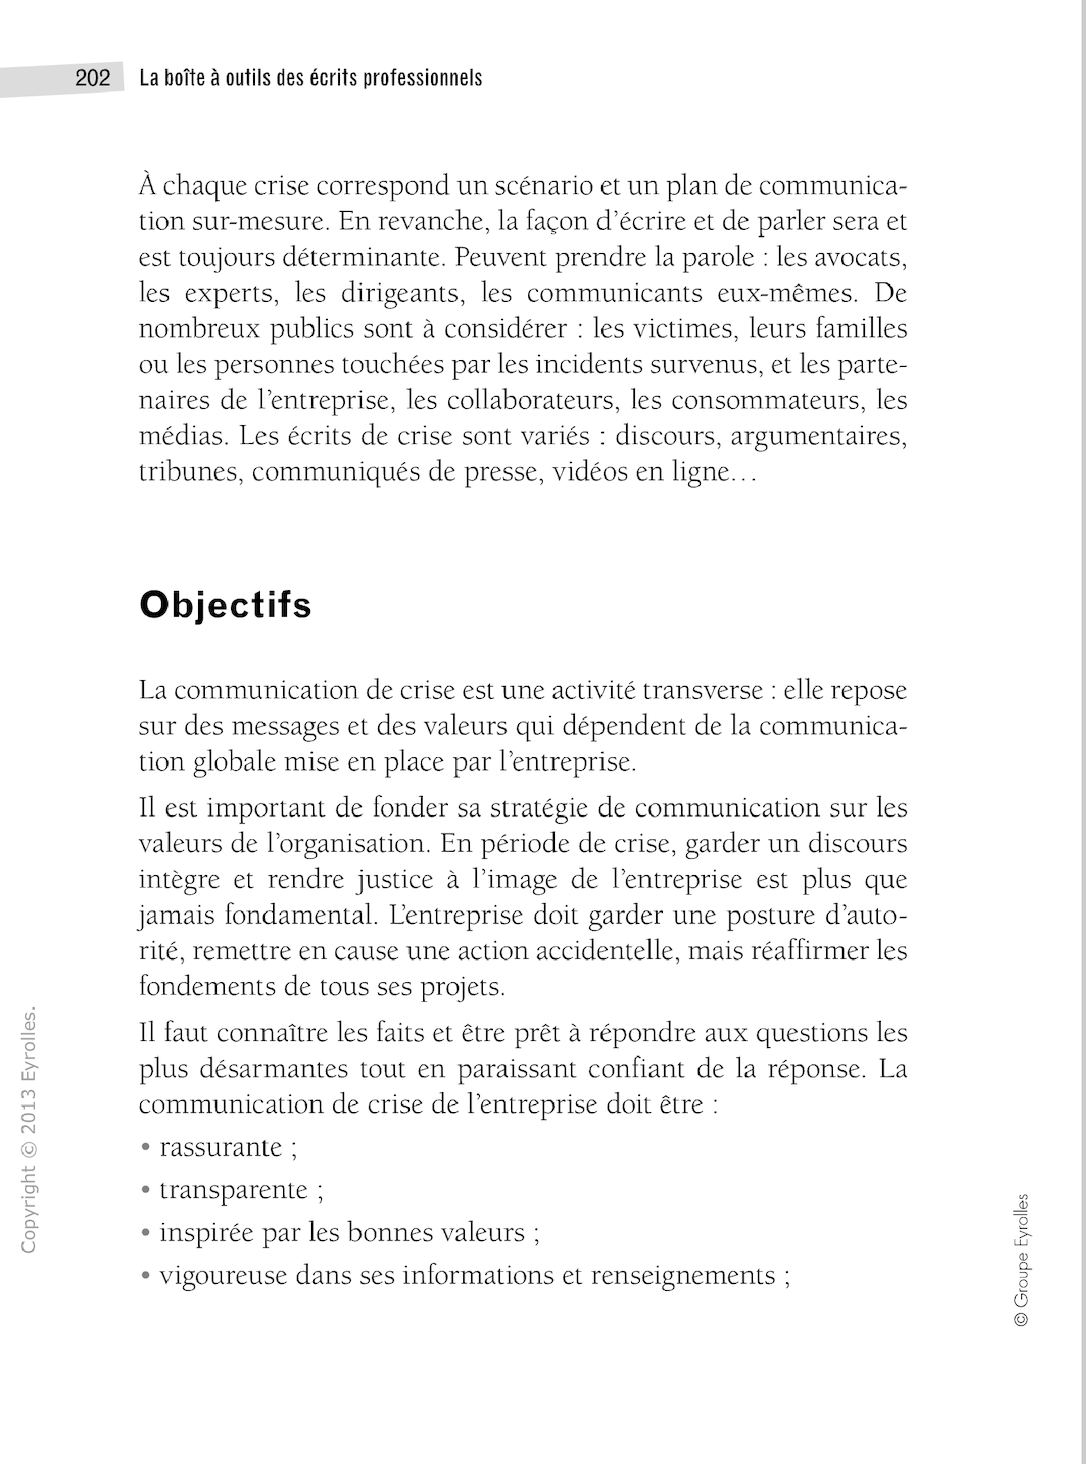 Page 205